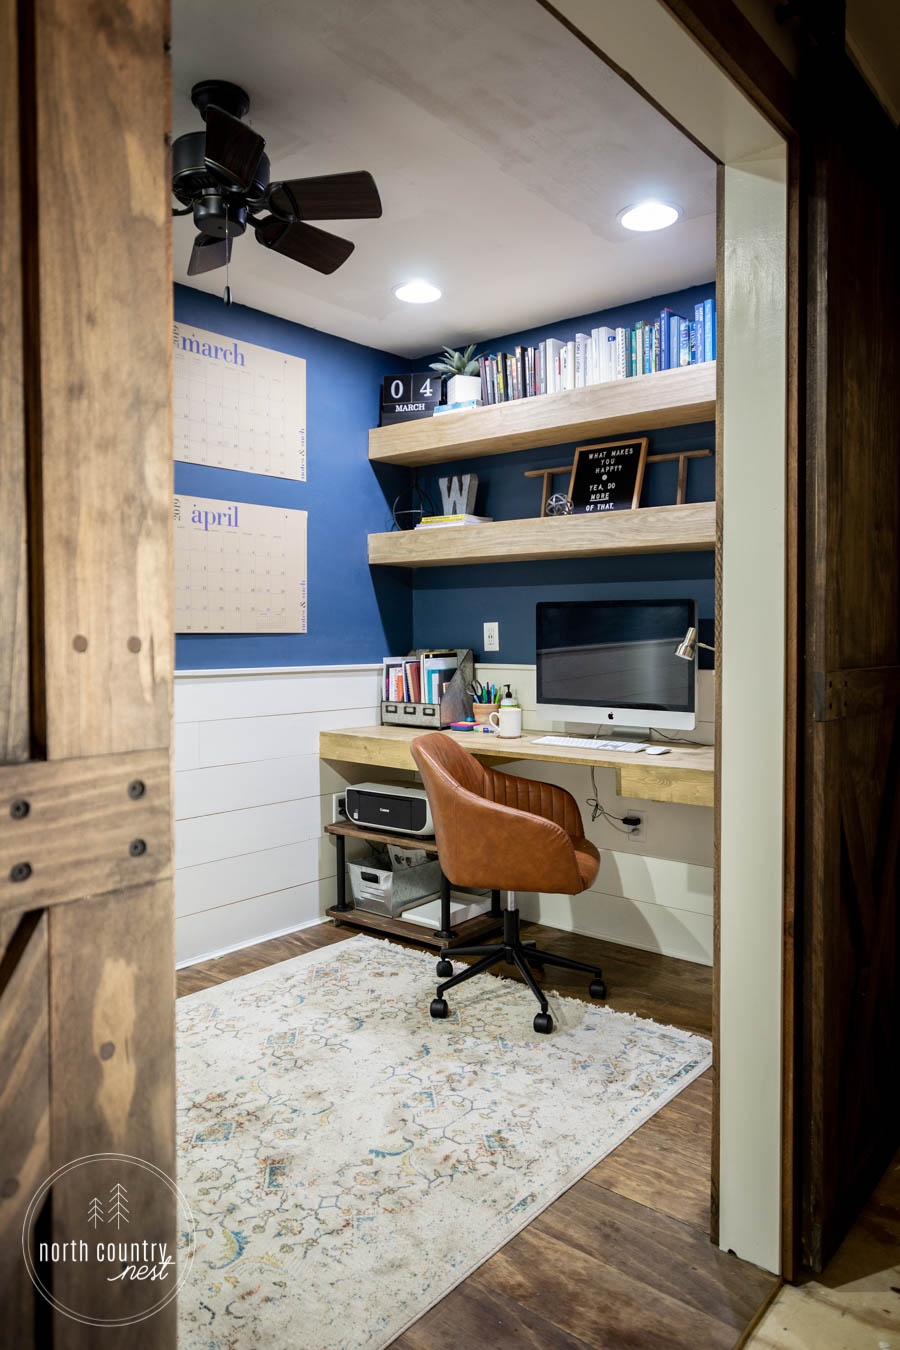 giant wall calendar in rustic home office